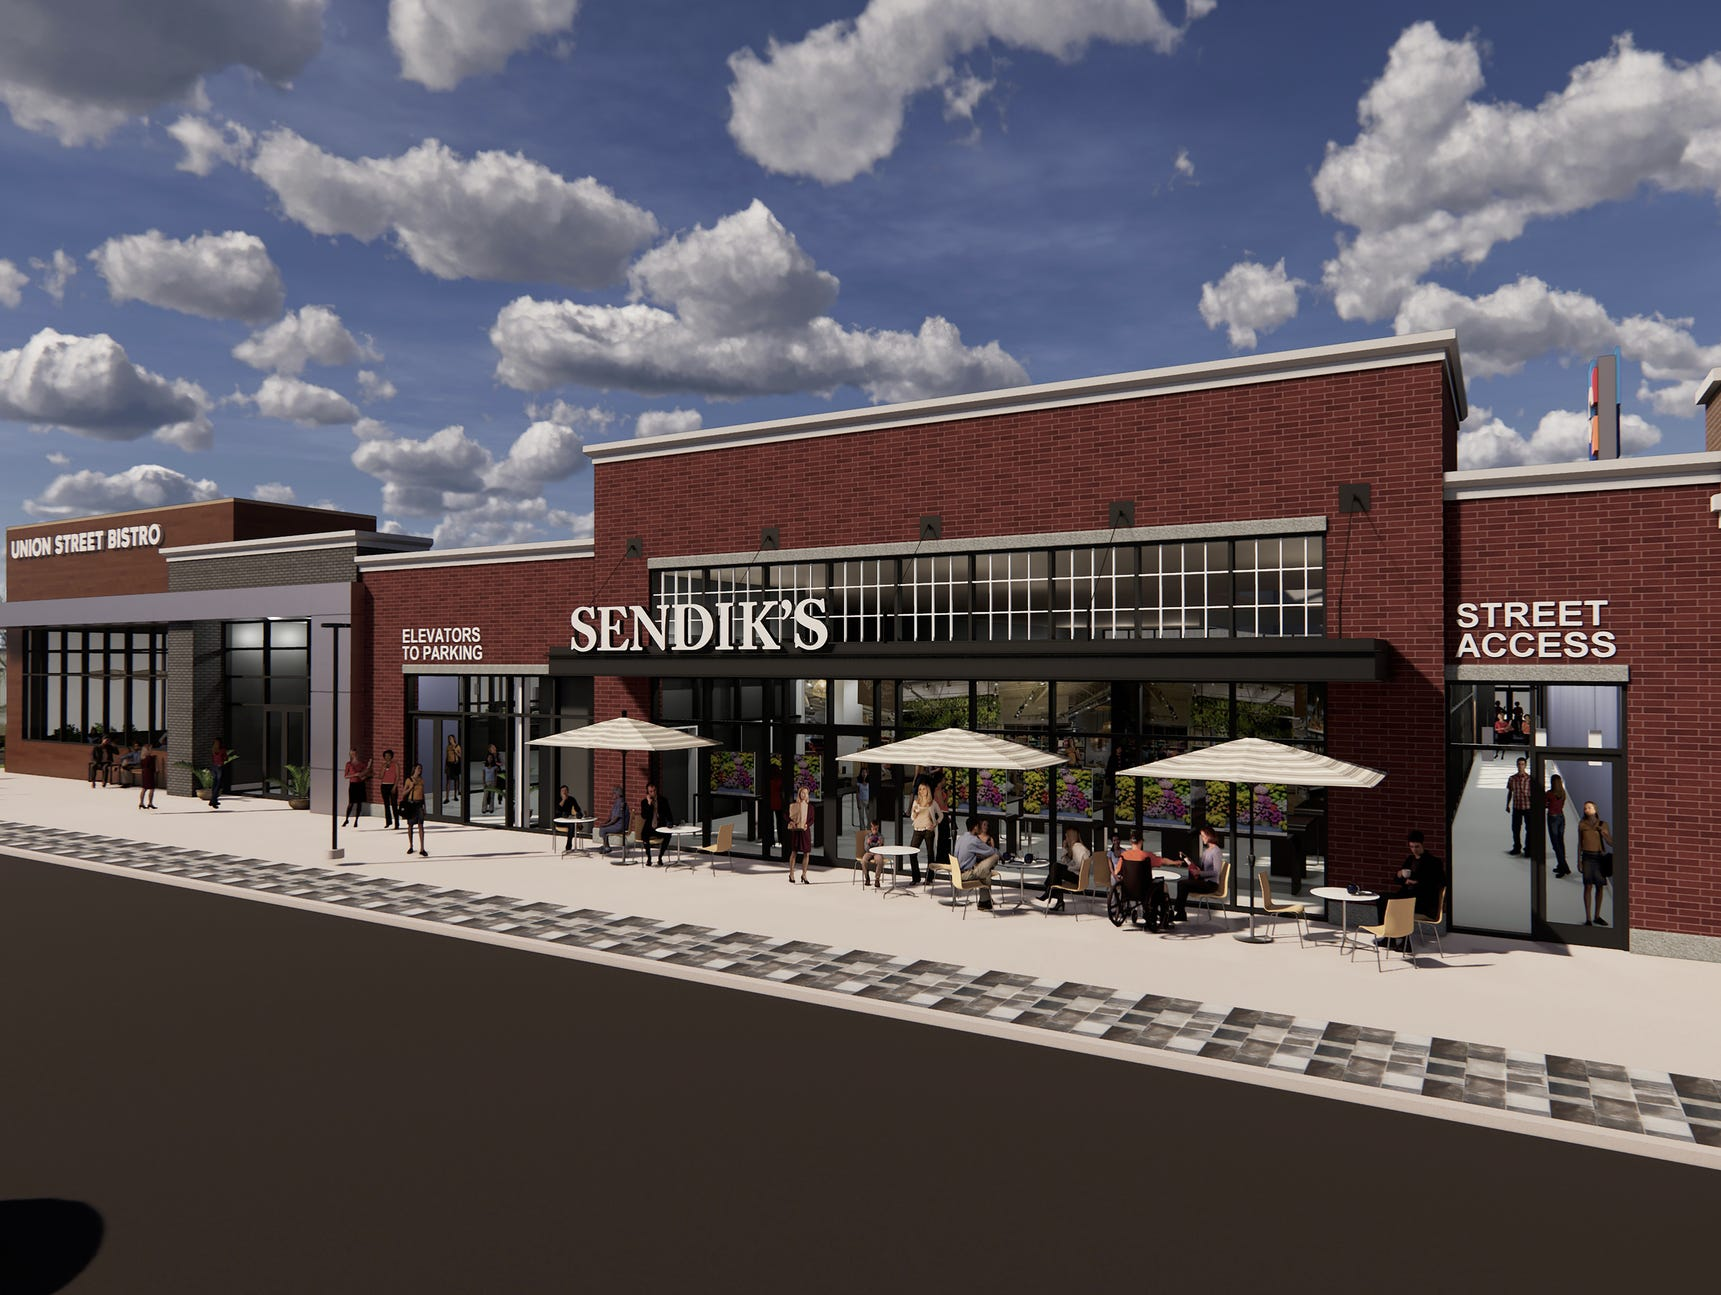 The expanded Sendik's supermarket at The Corners mixed-use development will include new space at the street level.